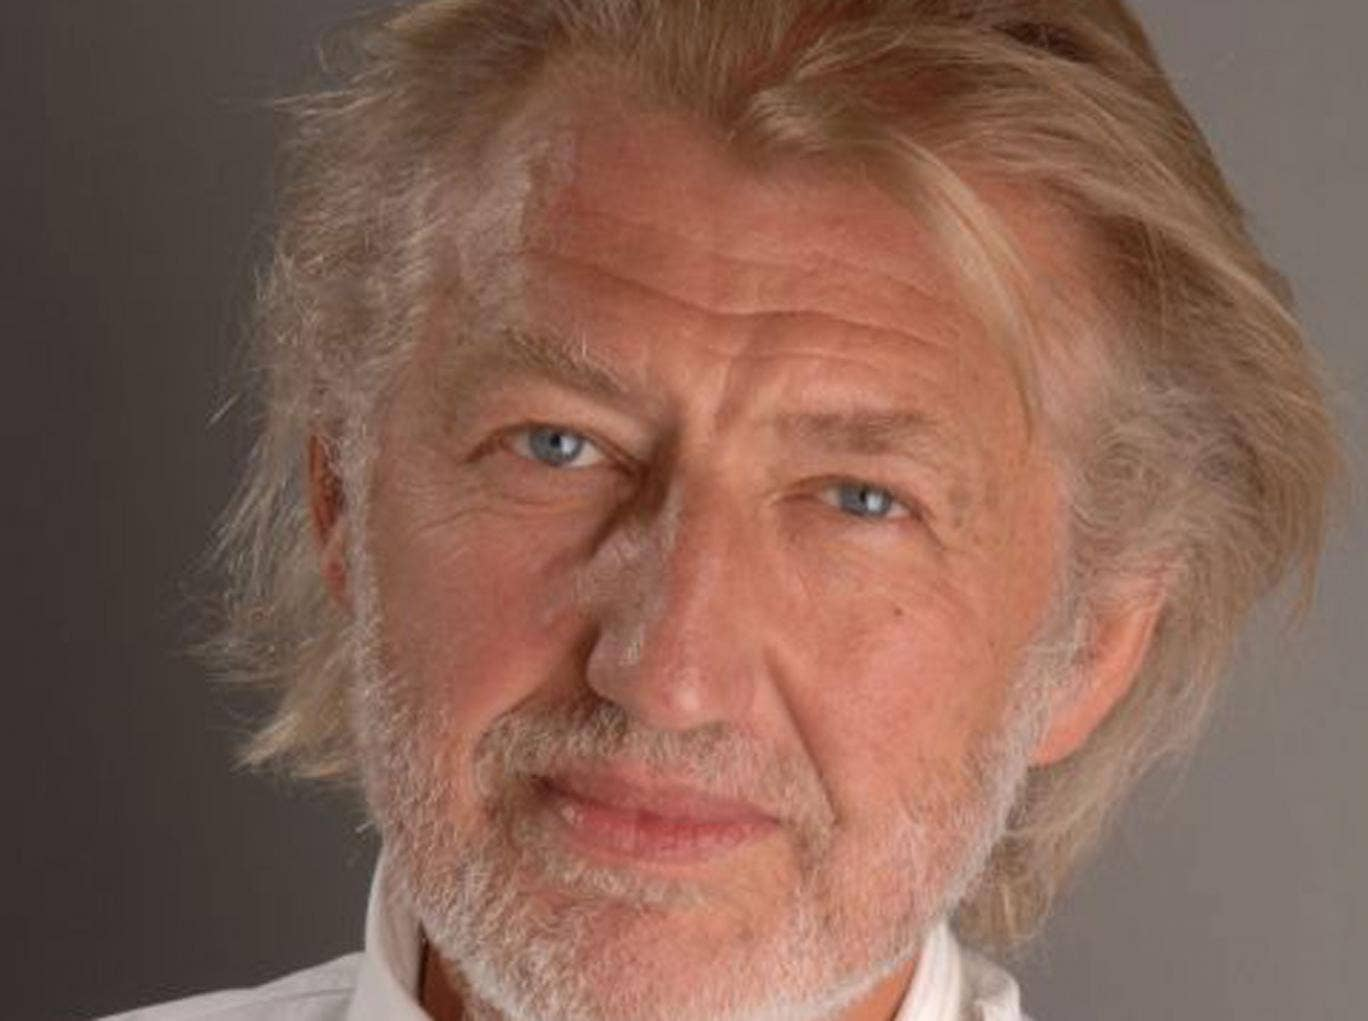 Pierre Gagnaire has 12 restaurants and holds 12 Michelin stars